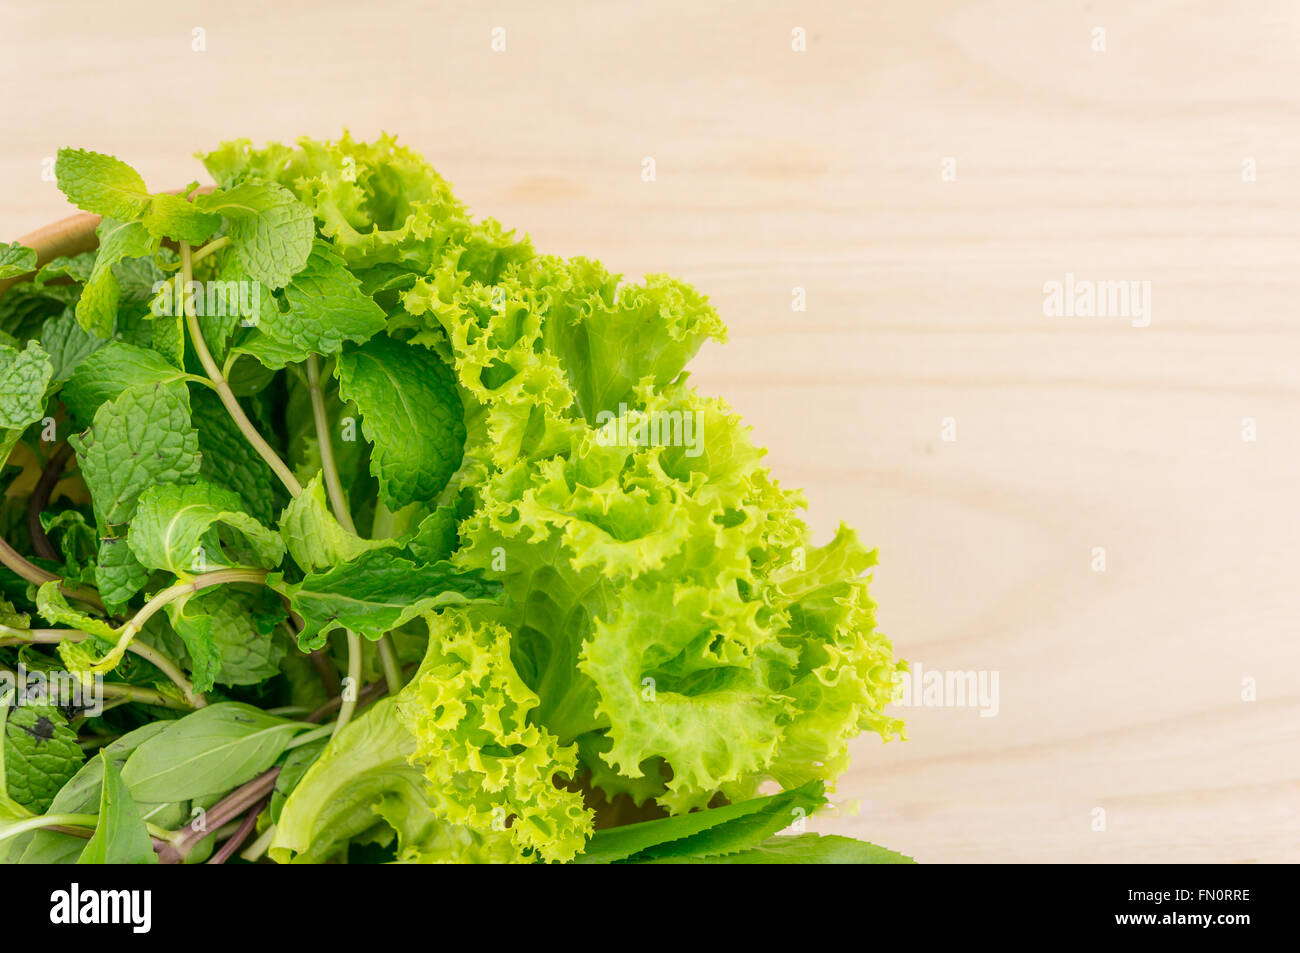 Green vegetables in wooden plate  on wooden background. Selective focus. - Stock Image